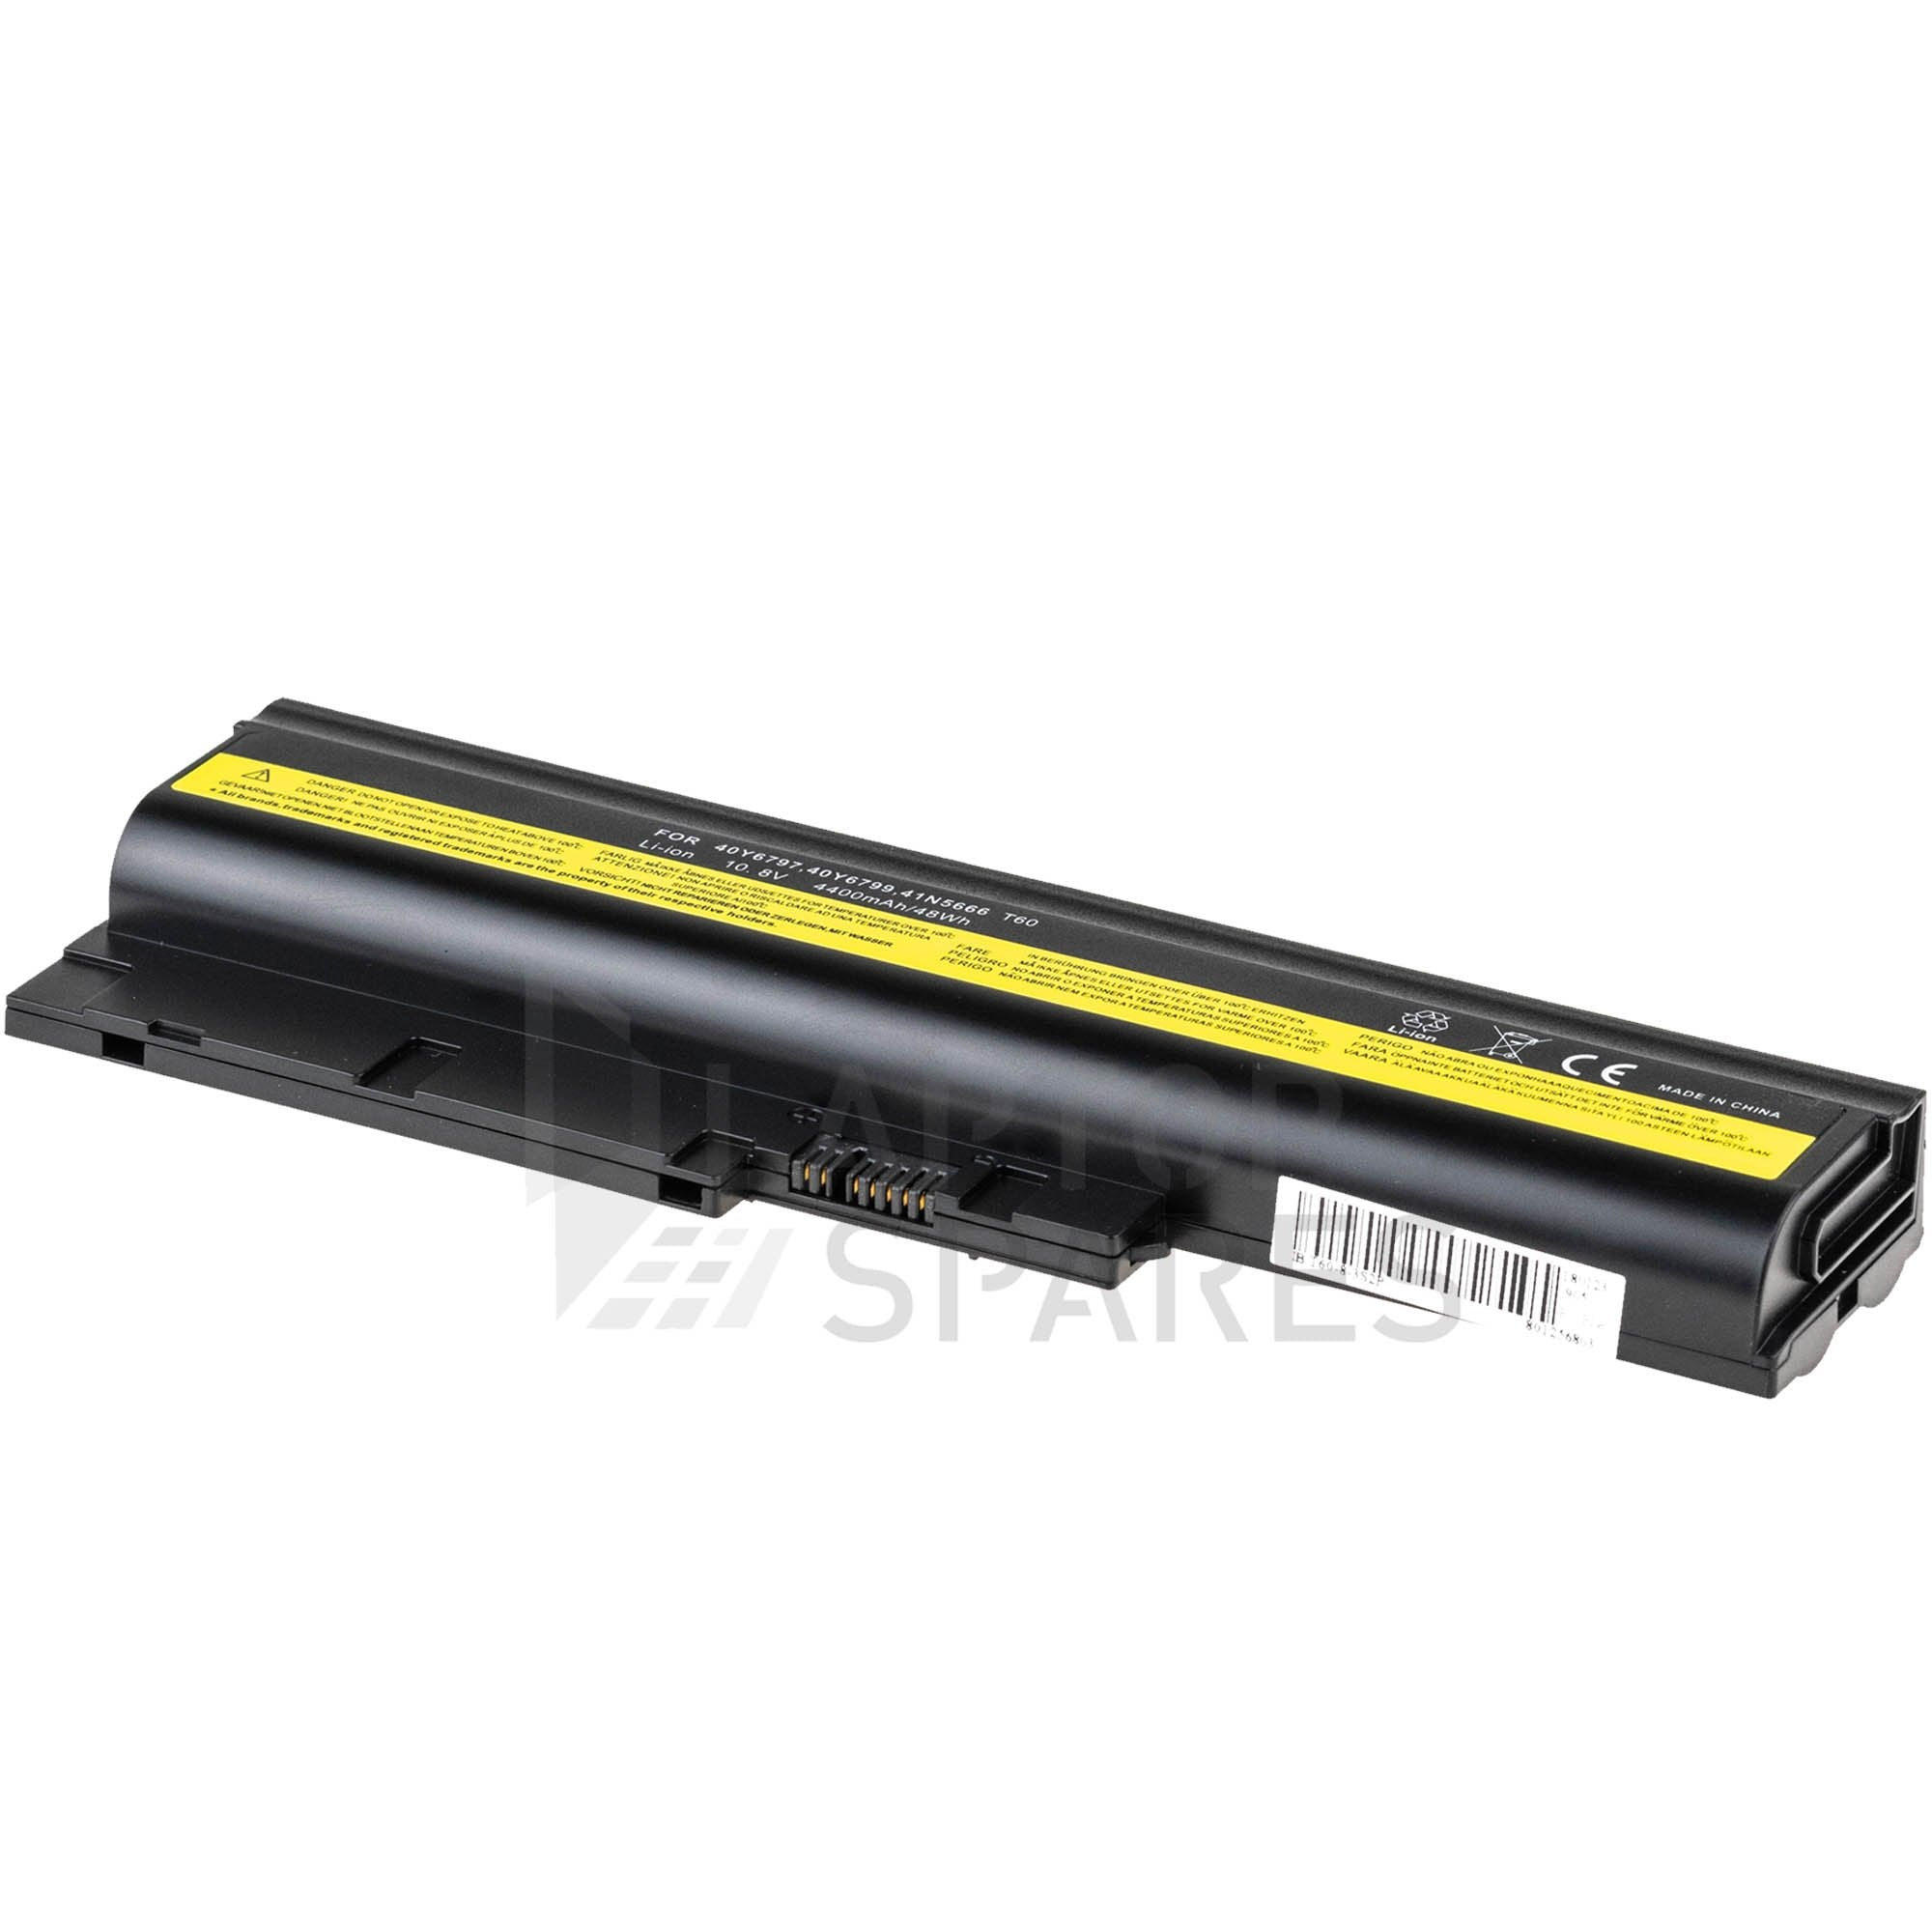 Lenovo ThinkPad T61p 8938 8939 4400mAh 6 Cell Battery